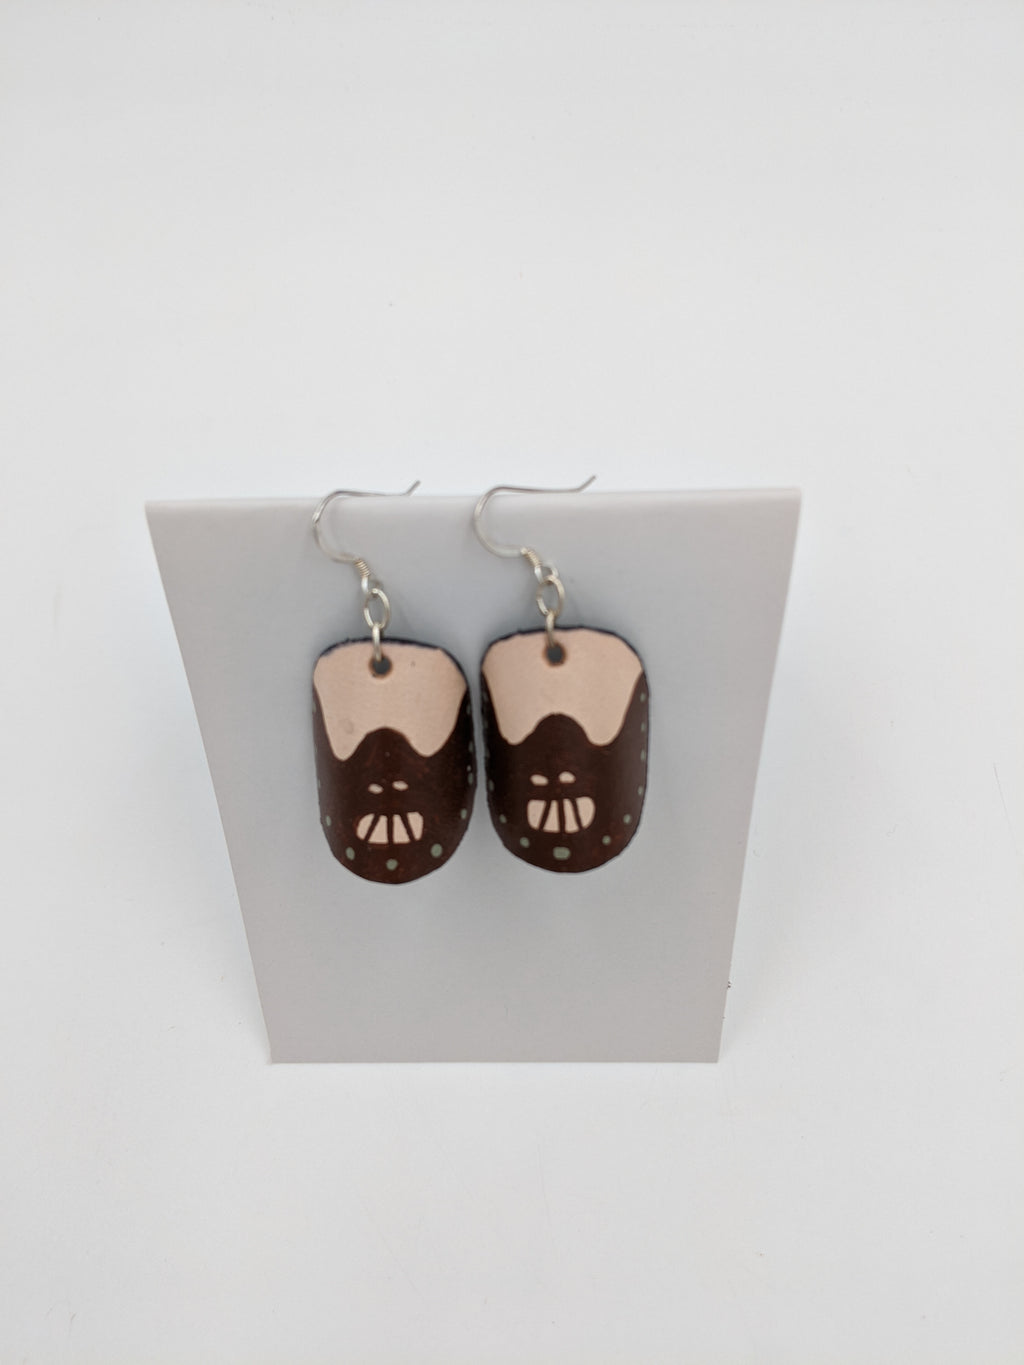 Leather Hannibal Lecter dangle earrings with sterling silver hook